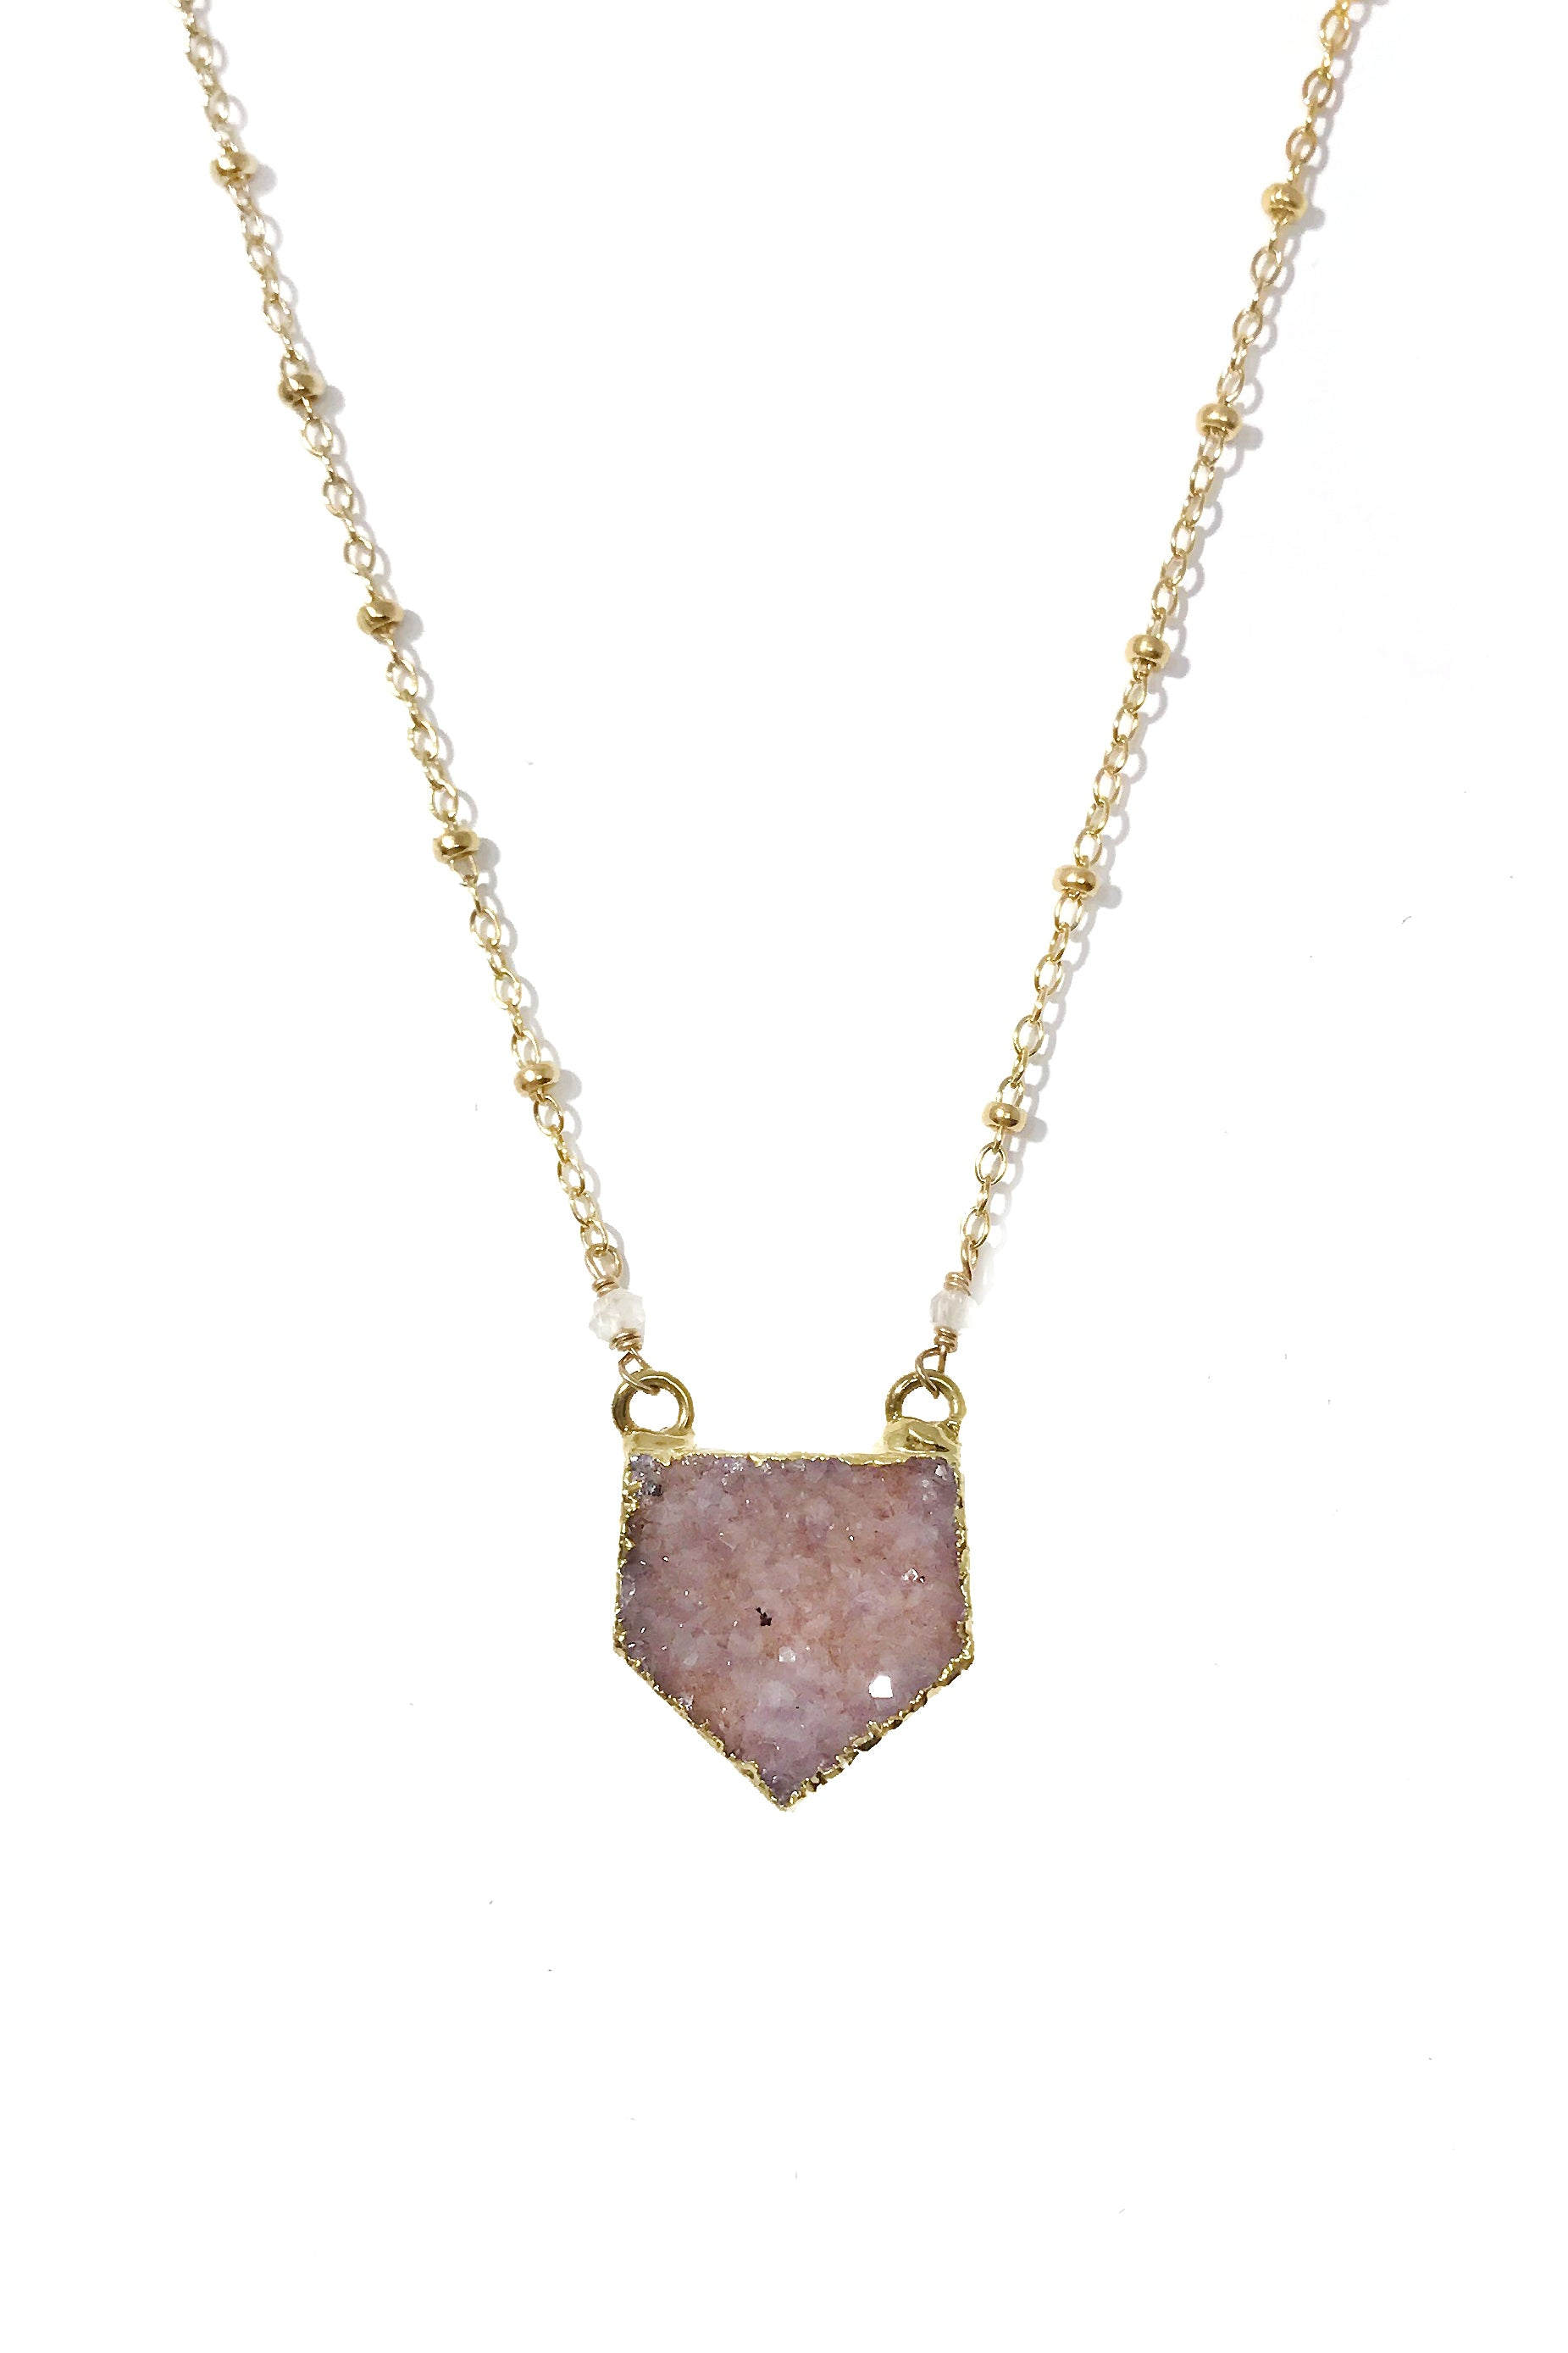 Every Moment Matters Druzy Necklace